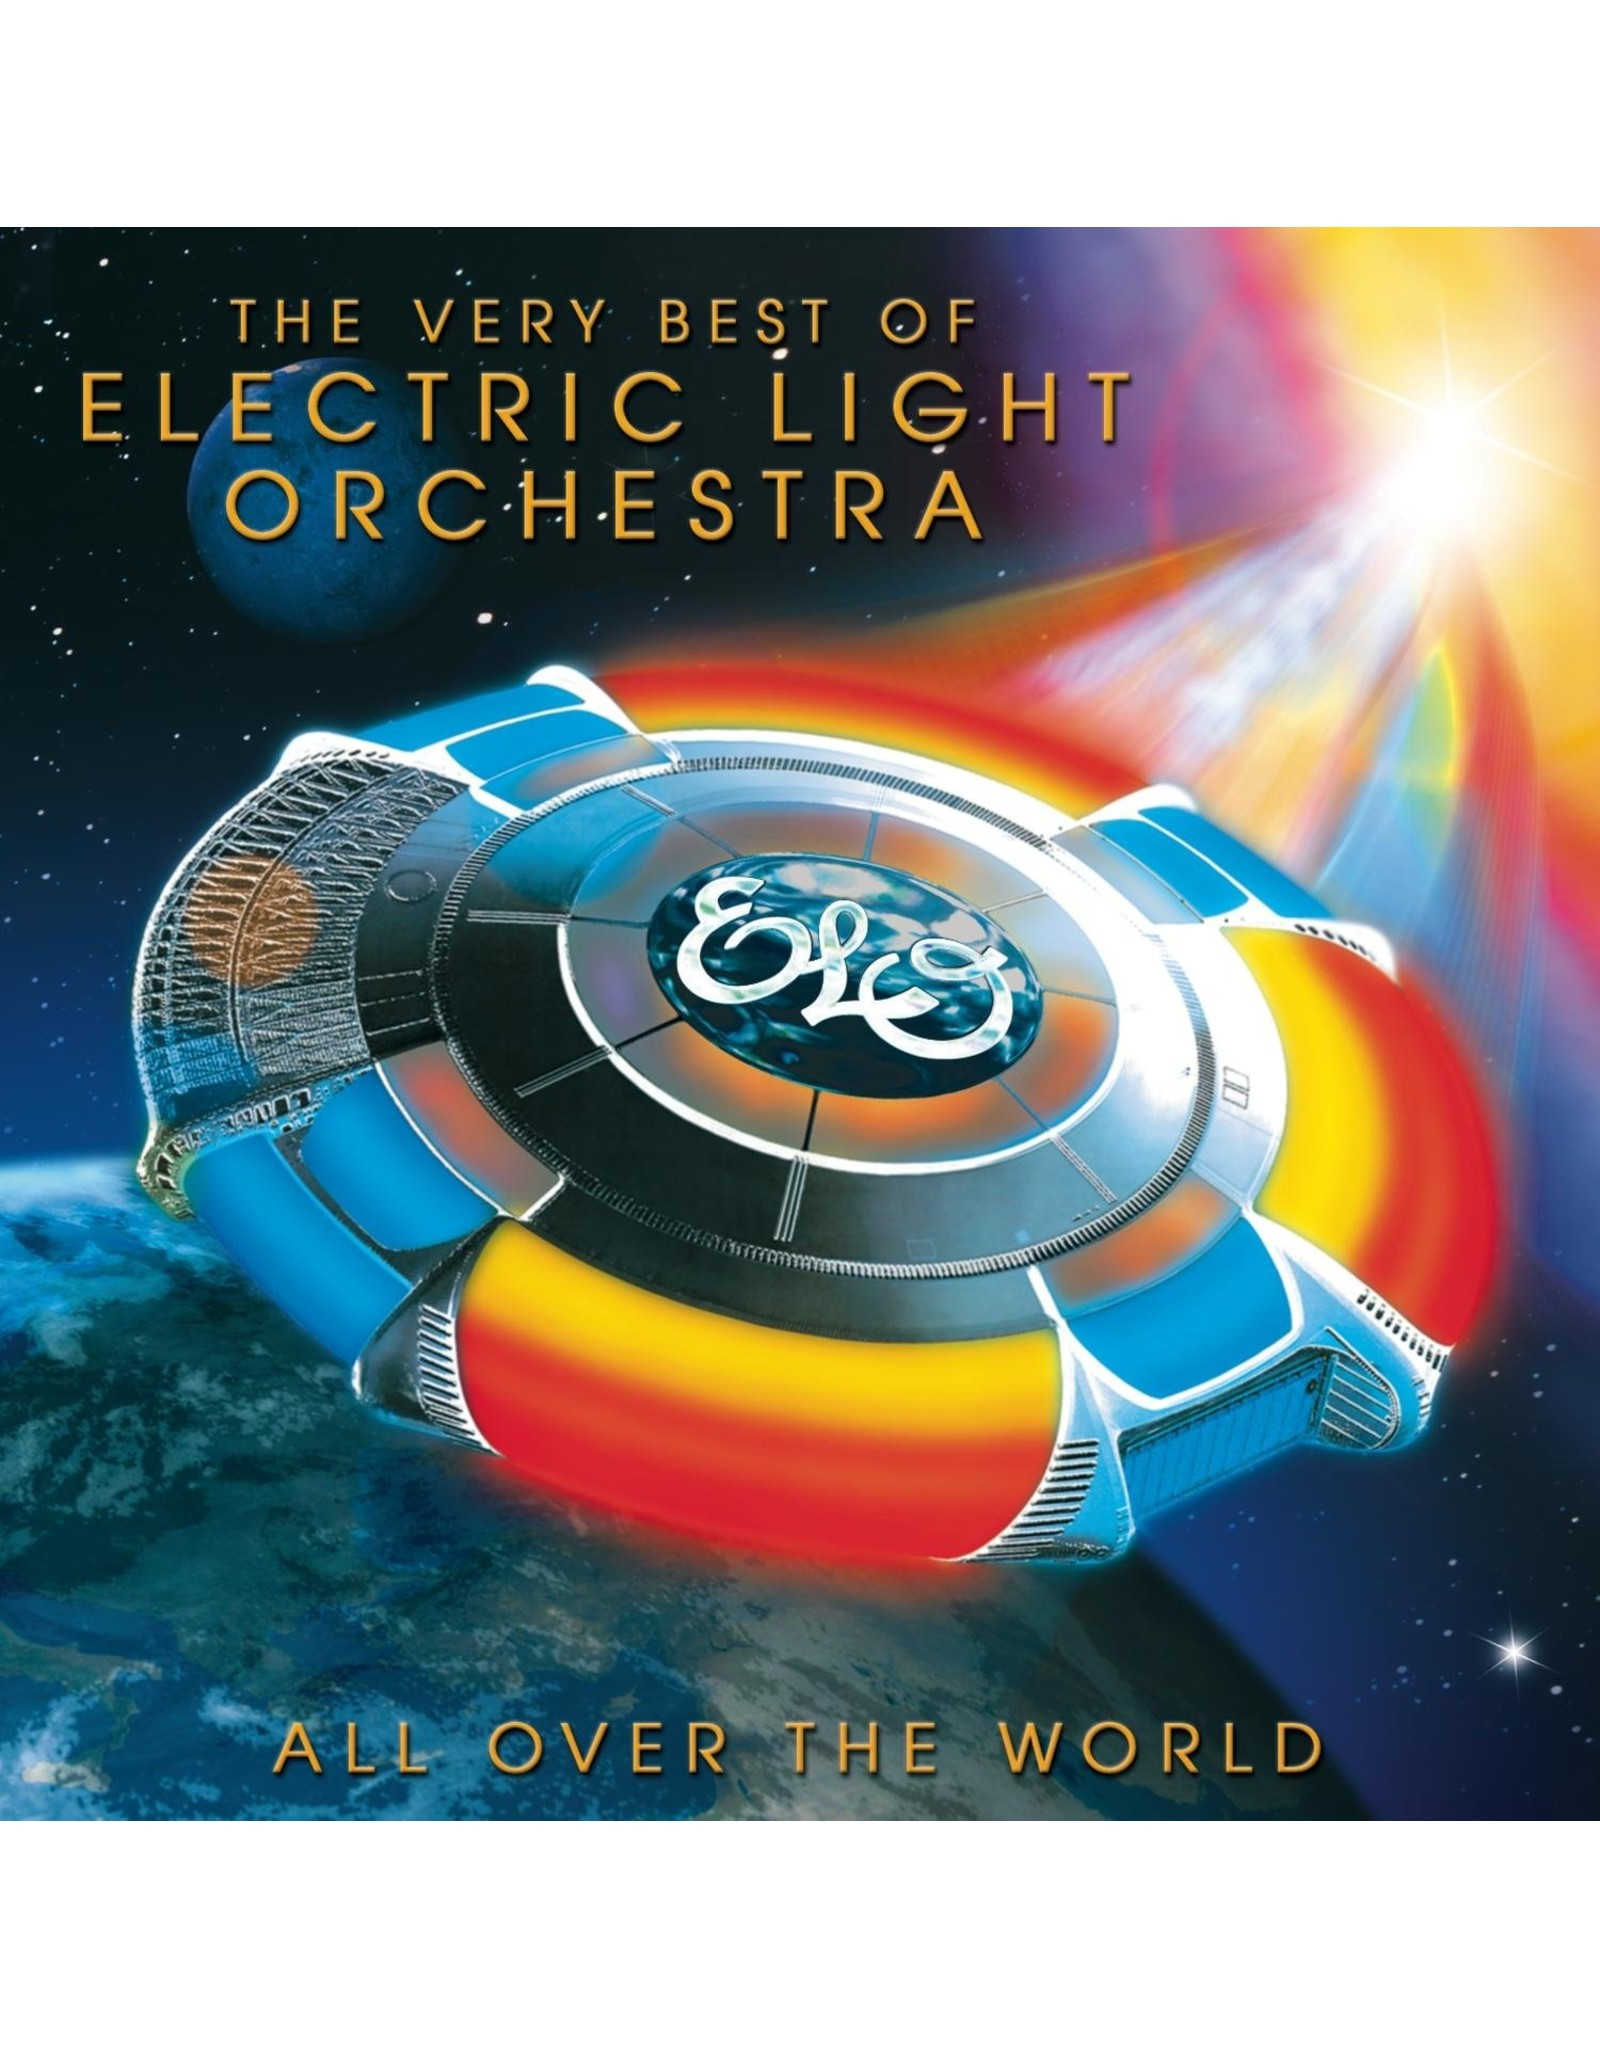 Electric Light Orchestra - All Over The World (Very Best Of ELO)